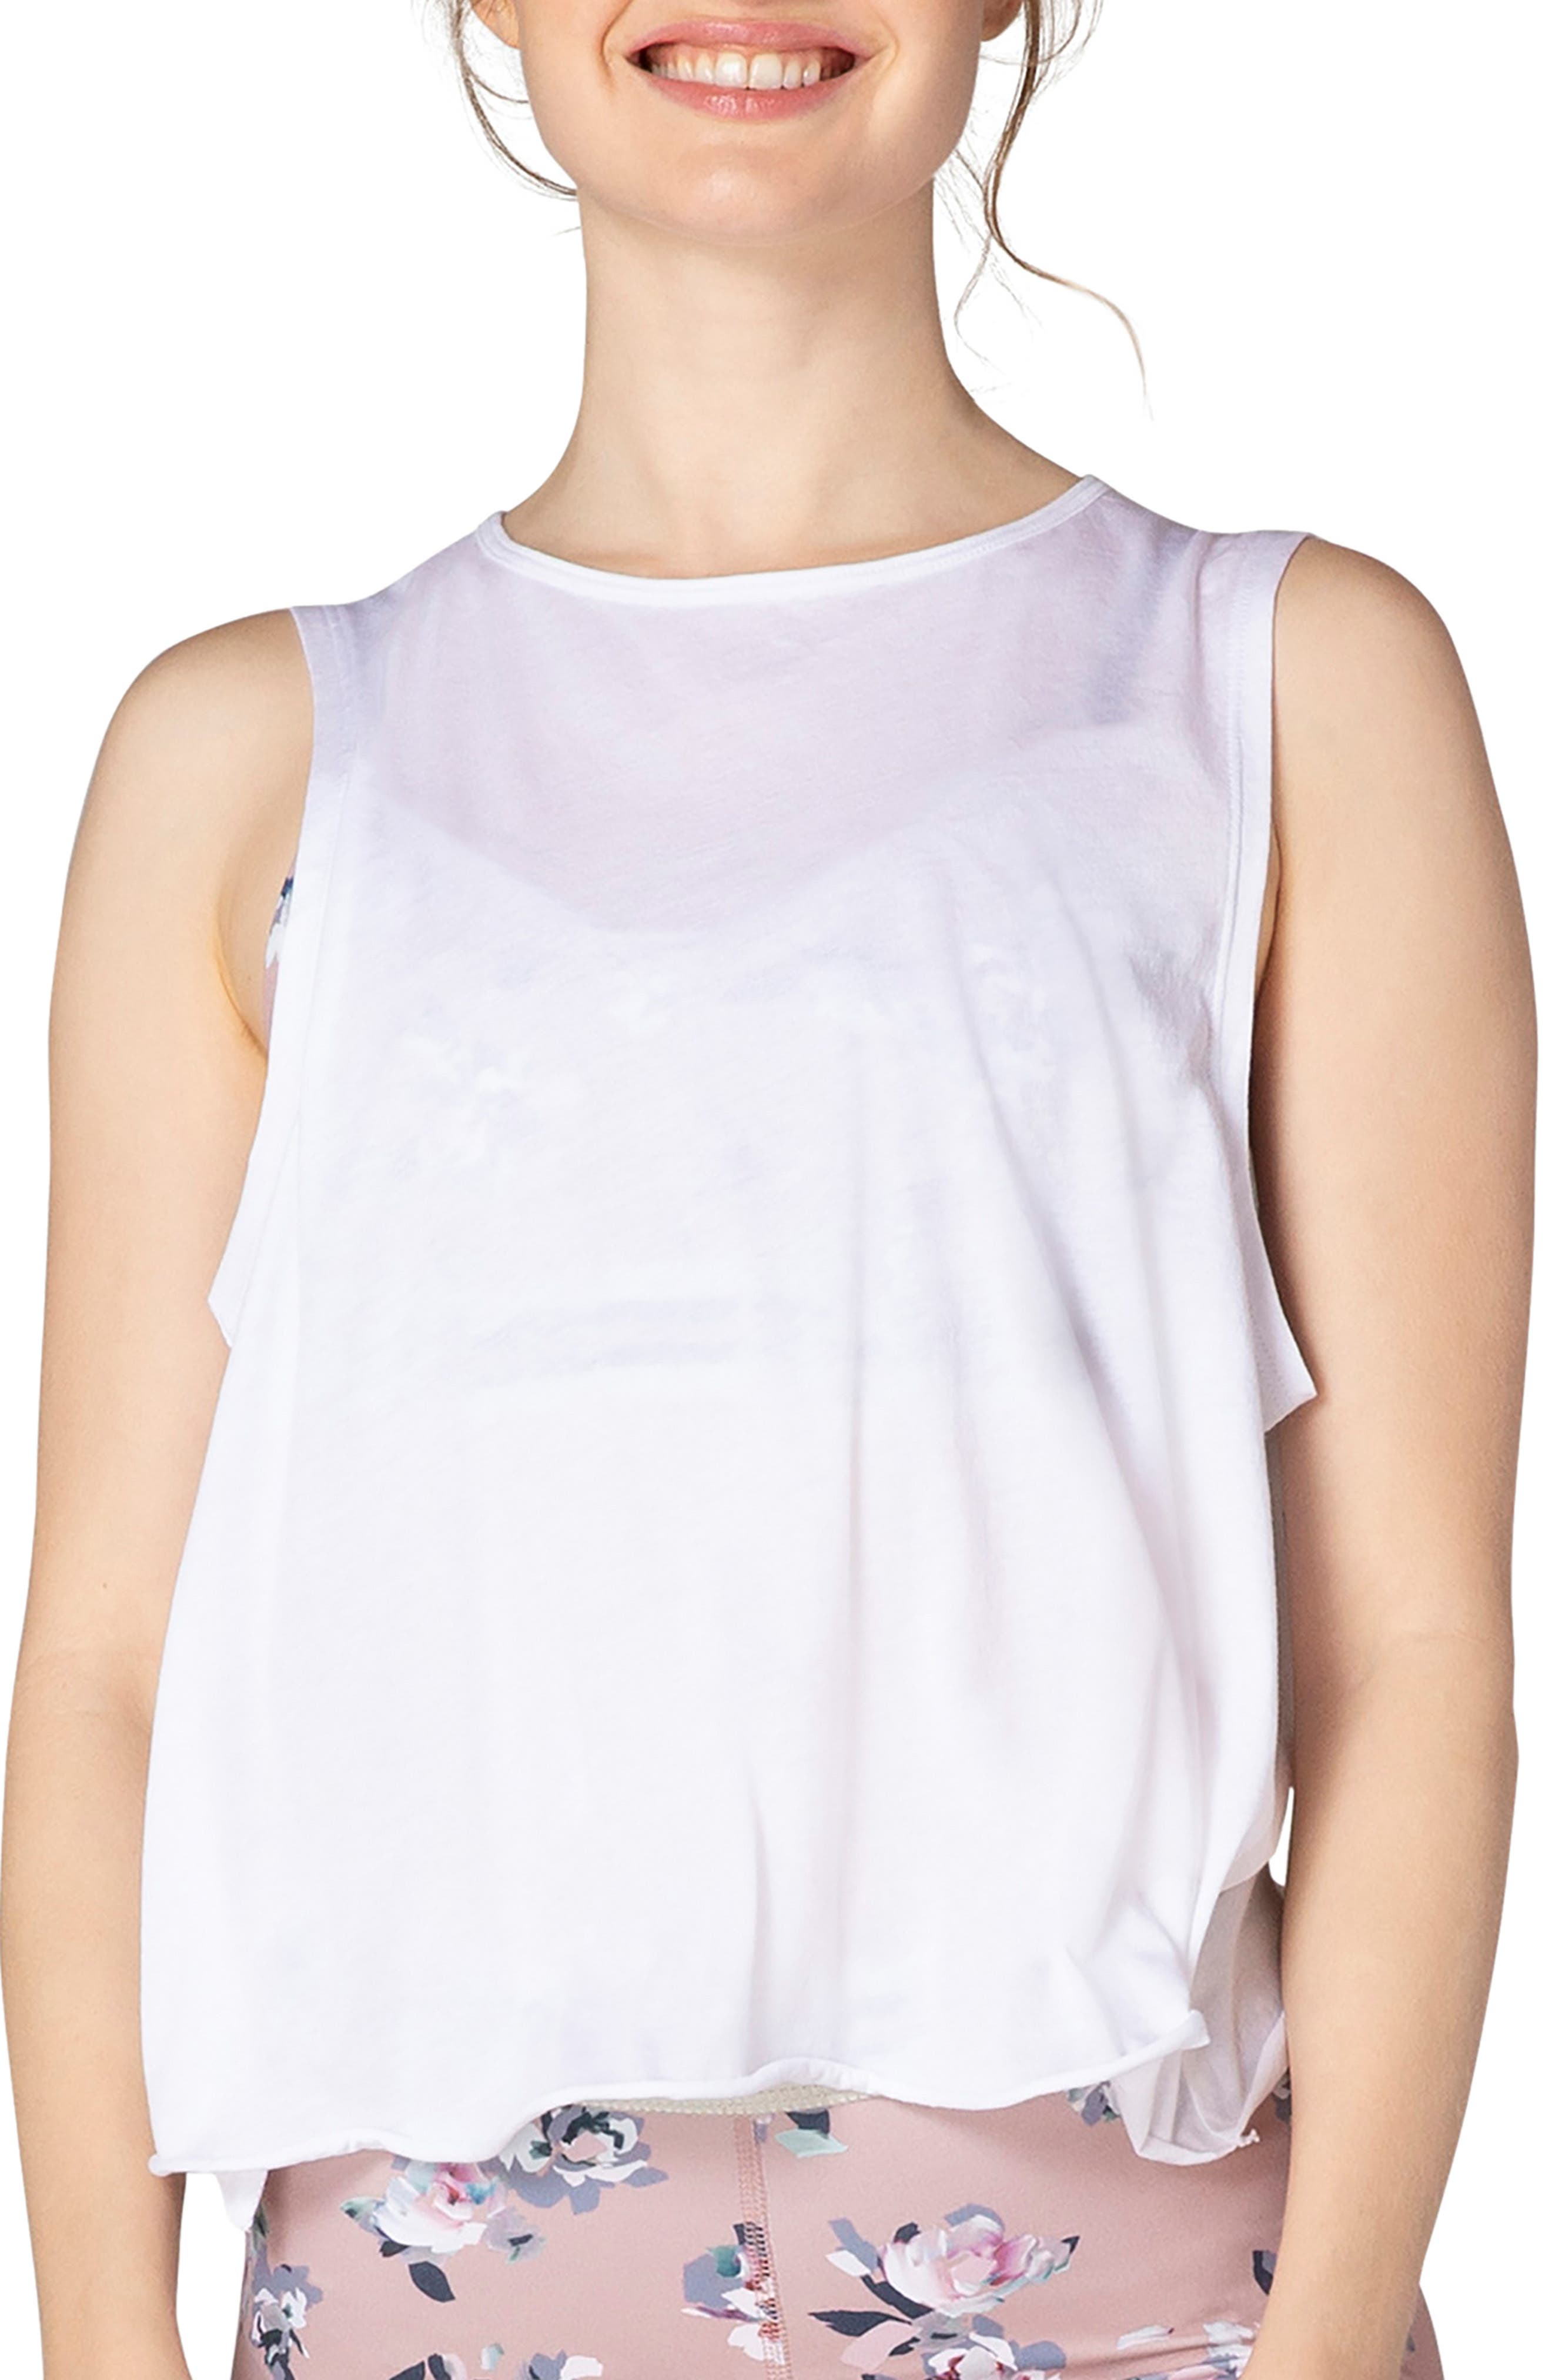 All About It Crop Tank Top, Main, color, 101